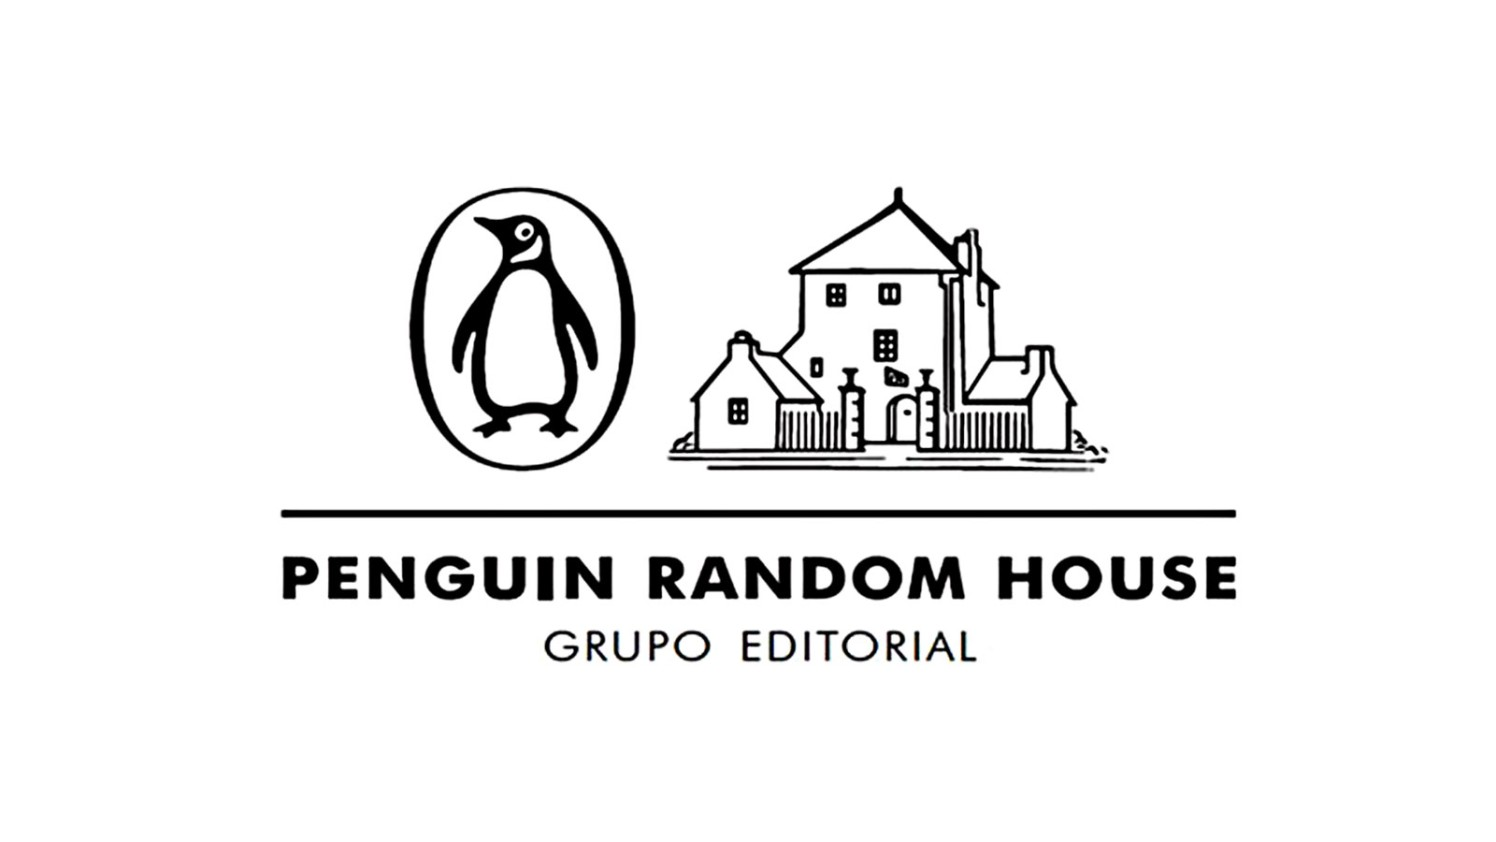 Since yesterday, Nov 4, Penguin Random House's Spanish-language publishers  have been renamed Penguin Random House Grupo Editorial, replacing the  previous ...